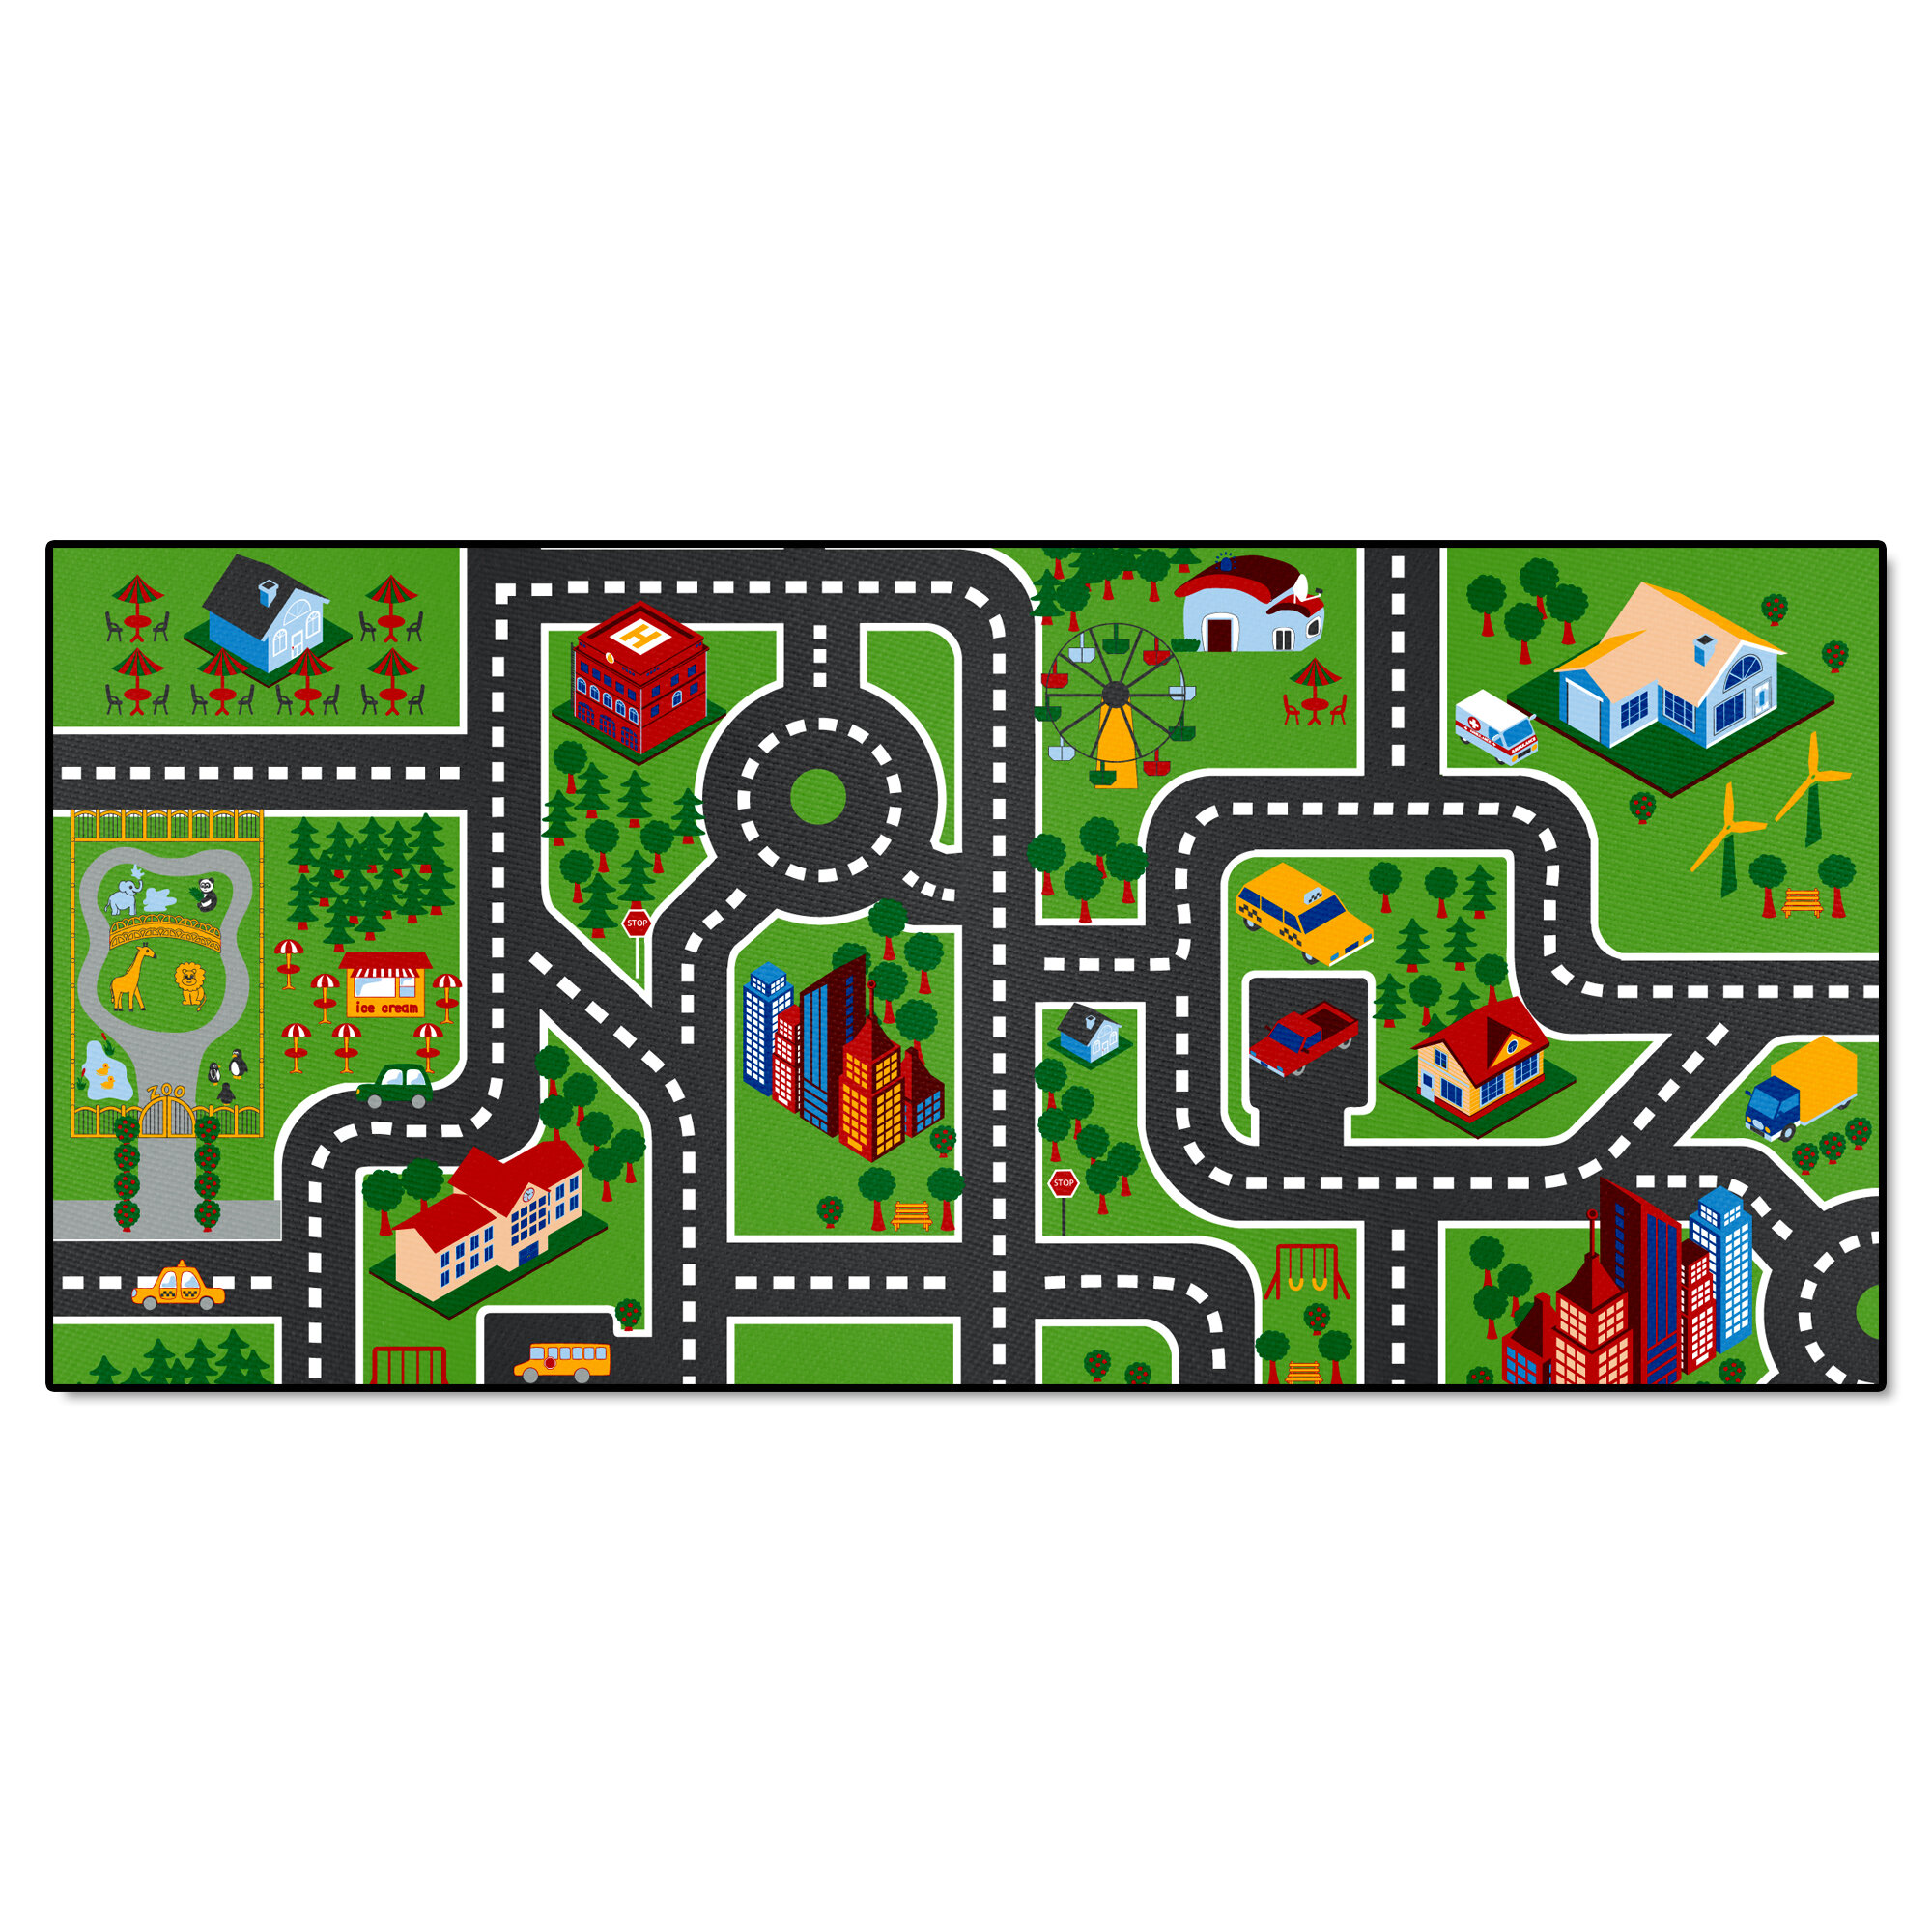 Floor mats for kids Daycare Black Temptation Baby Bath Toy Bath Water Learning Educational Toy Fanmats City Streets Nonslip Kids Floor Mat Reviews Wayfair